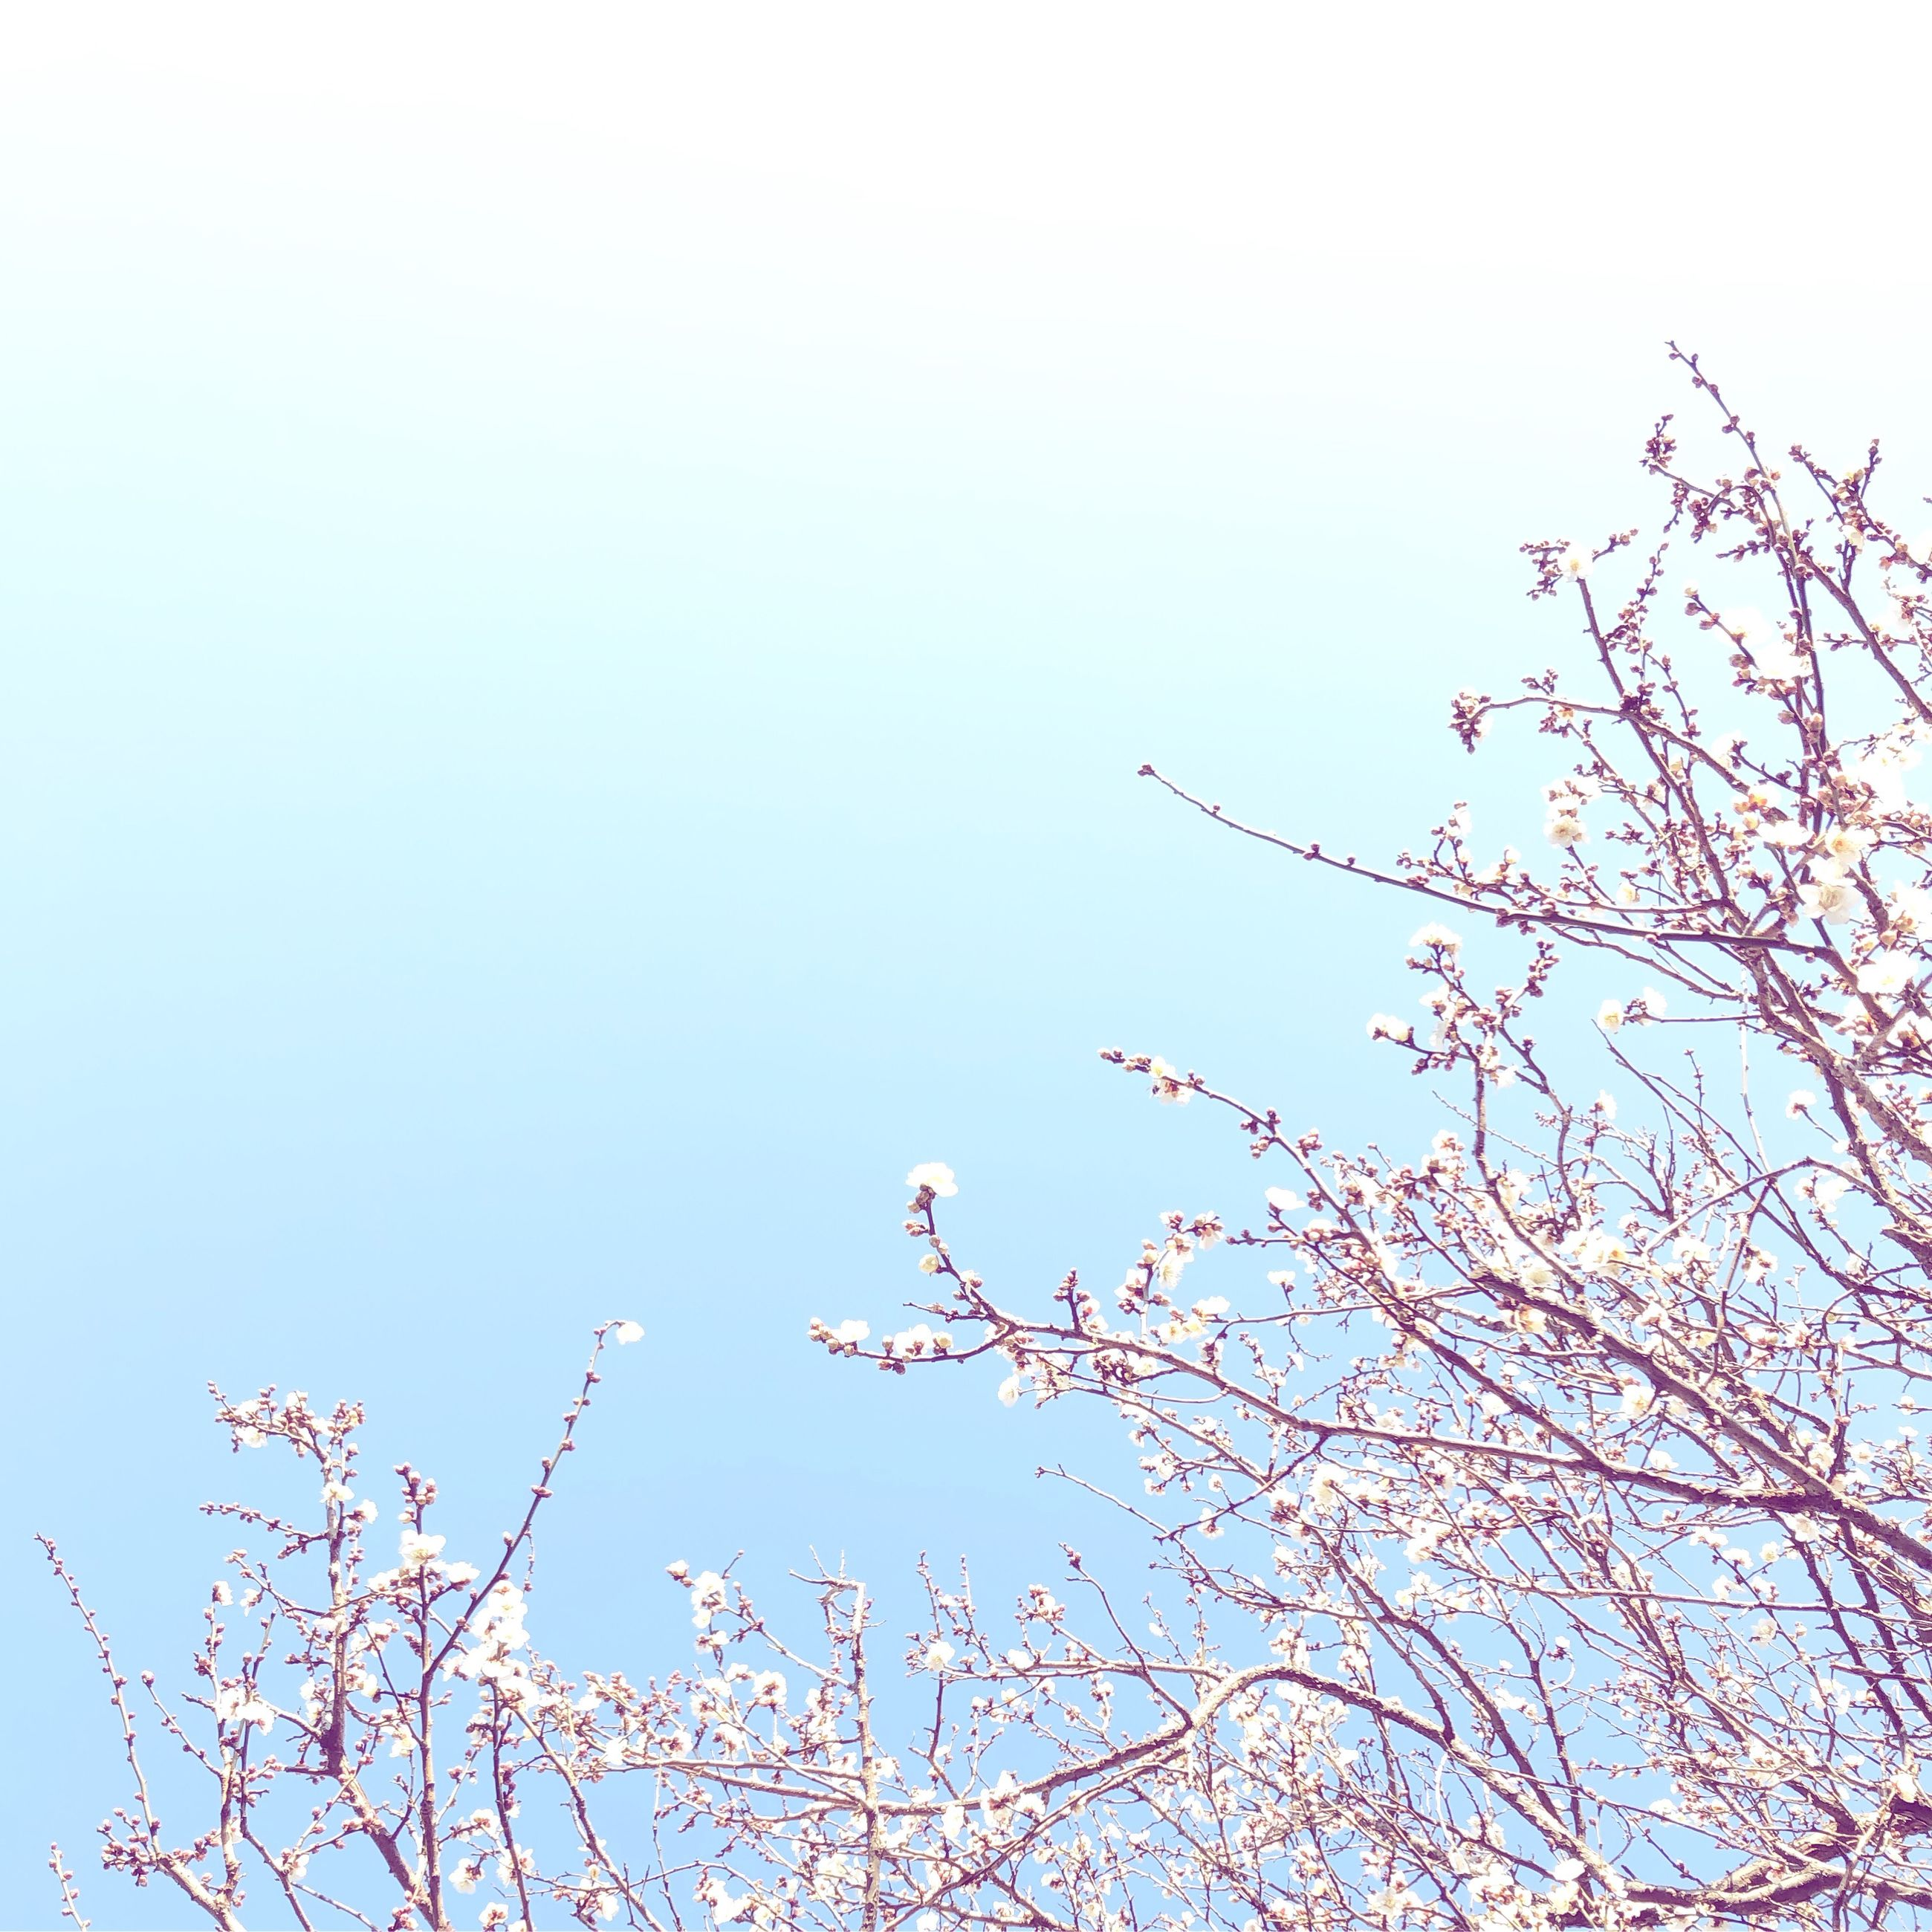 plant, tree, sky, branch, beauty in nature, clear sky, low angle view, nature, bird, growth, flower, flowering plant, vertebrate, day, animal wildlife, animals in the wild, one animal, animal, animal themes, no people, springtime, cherry blossom, outdoors, cherry tree